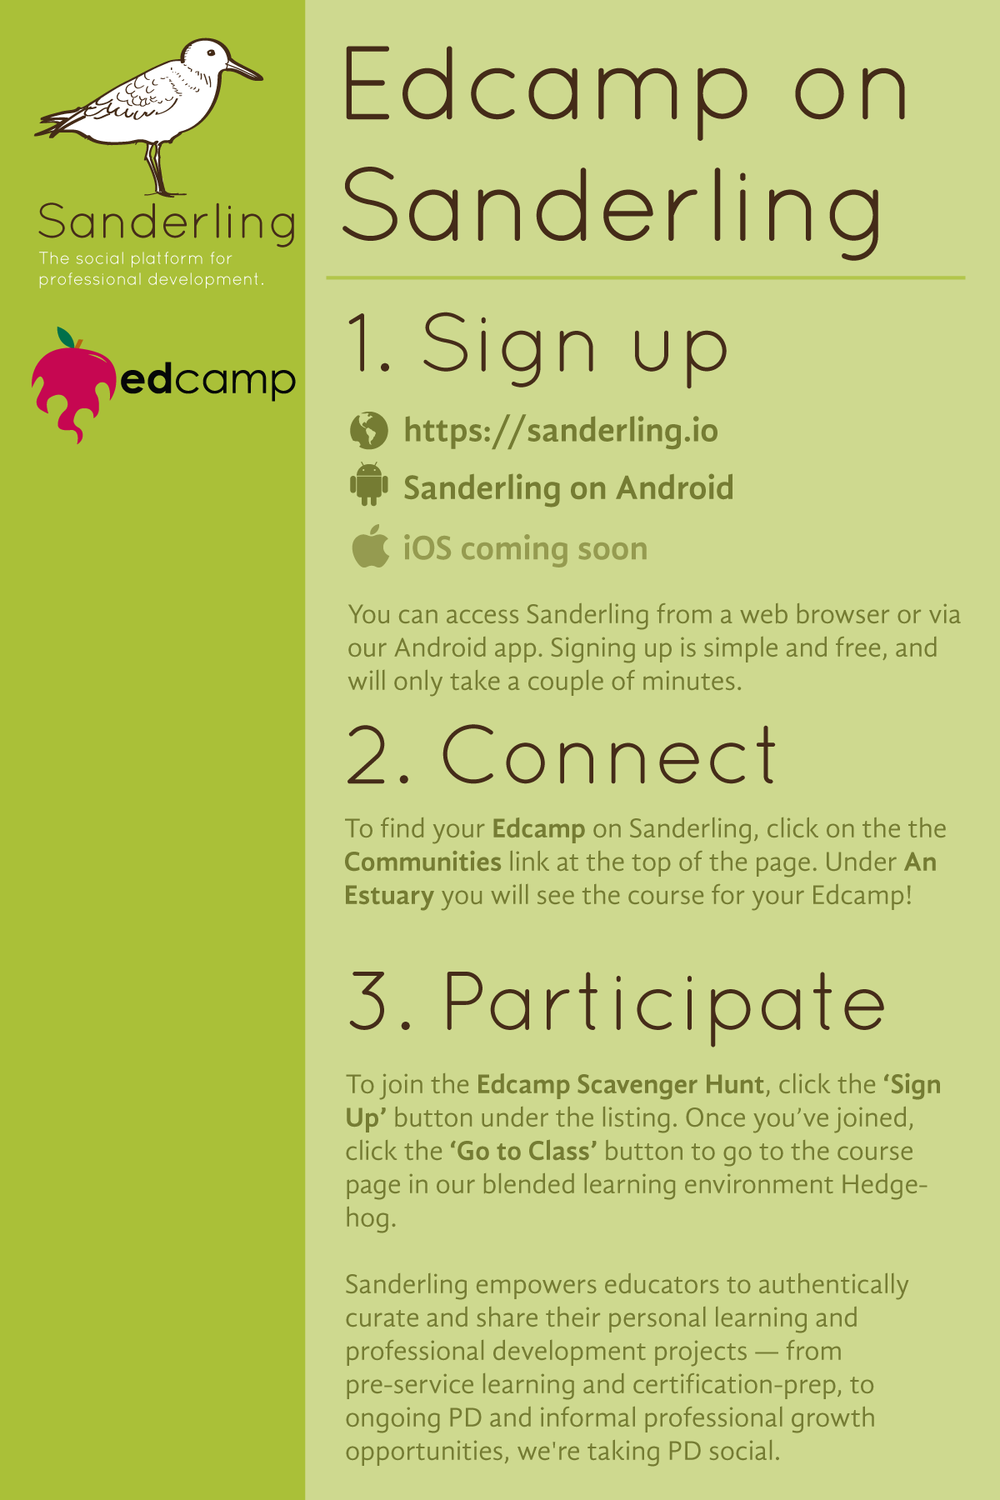 edcamp_how_to-01.png